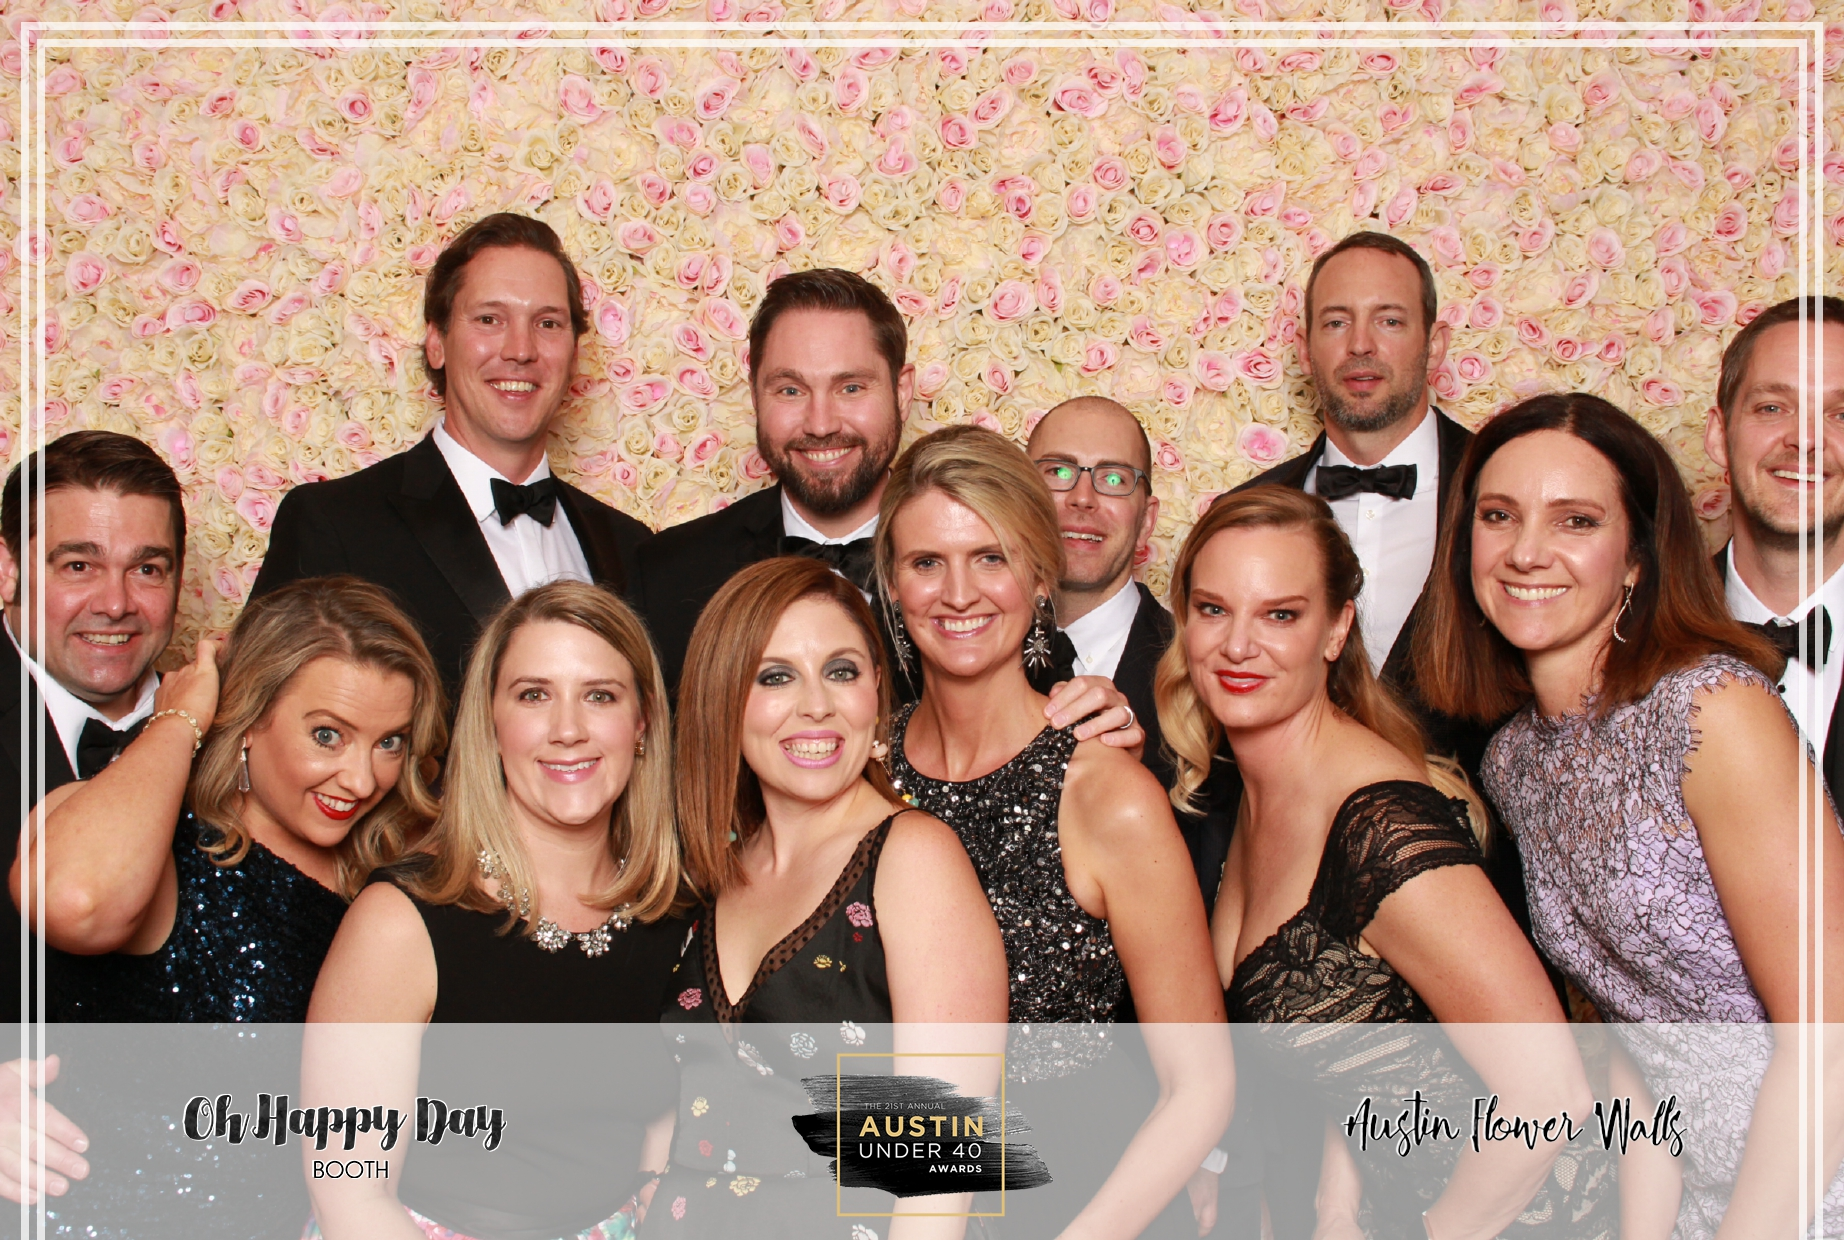 Oh Happy Day Booth - Austin Under 40-136.jpg